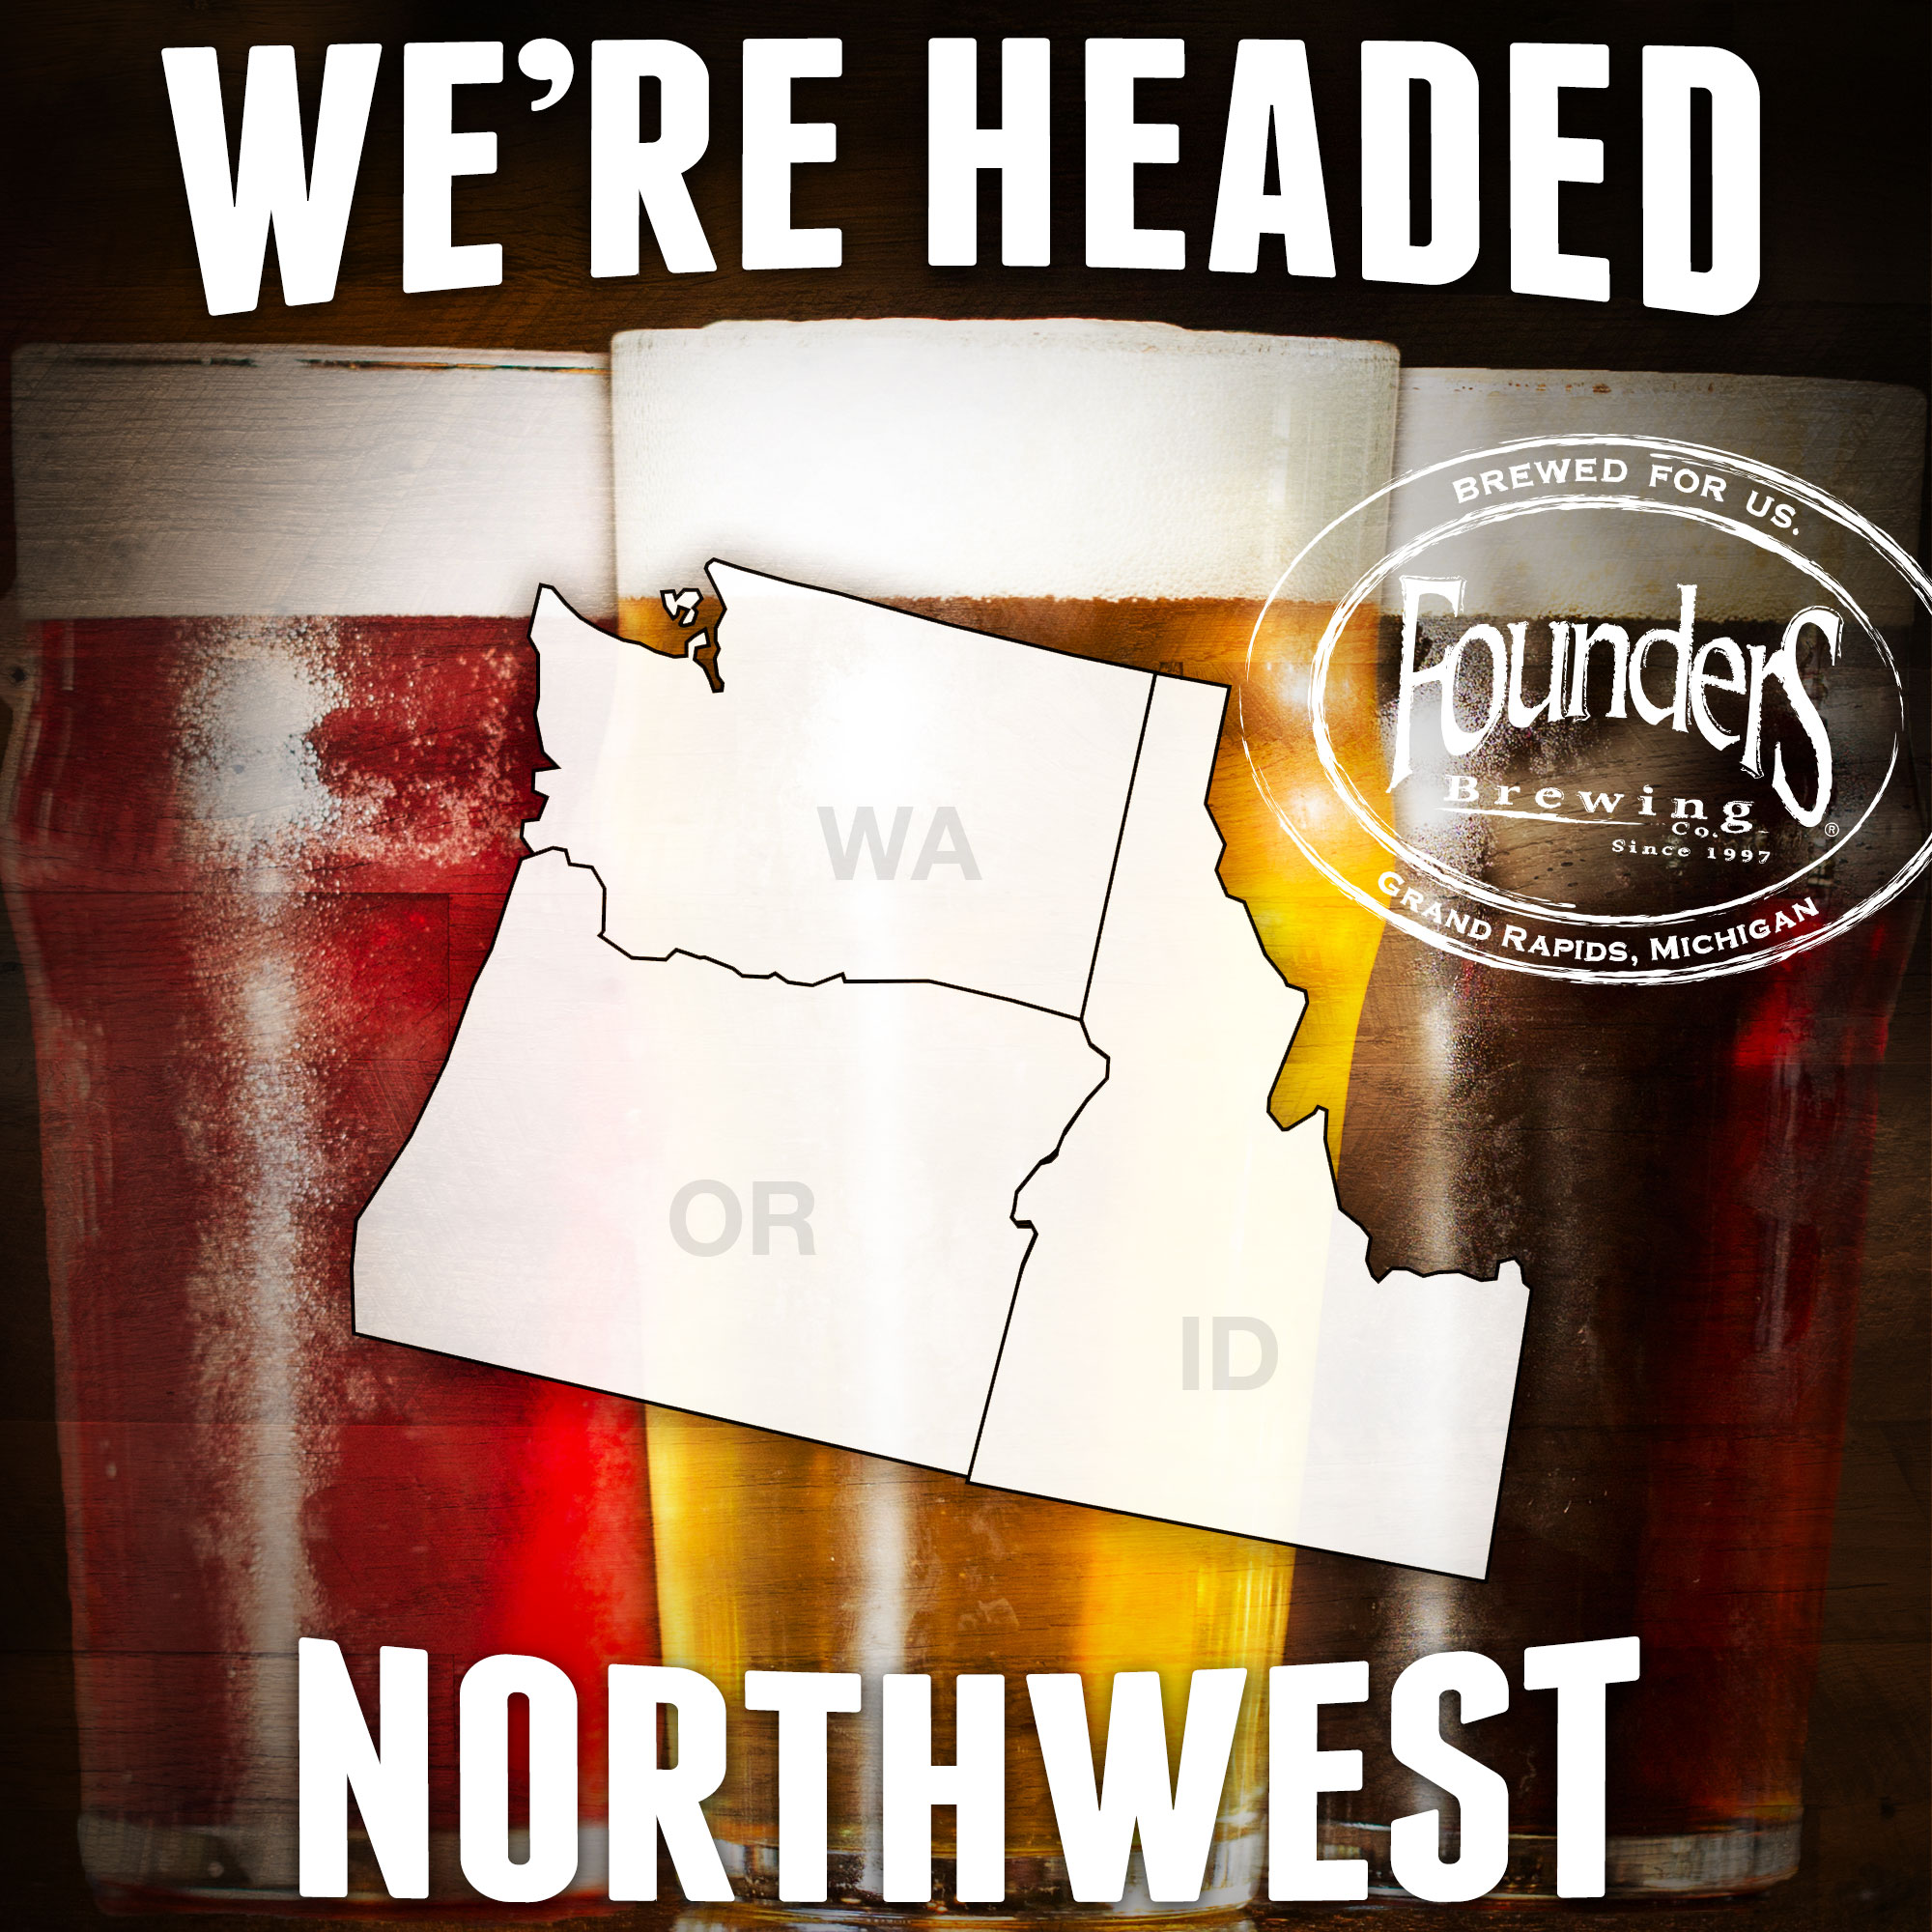 Founders promotion showing that they're coming to Washington, Oregon, and Idaho